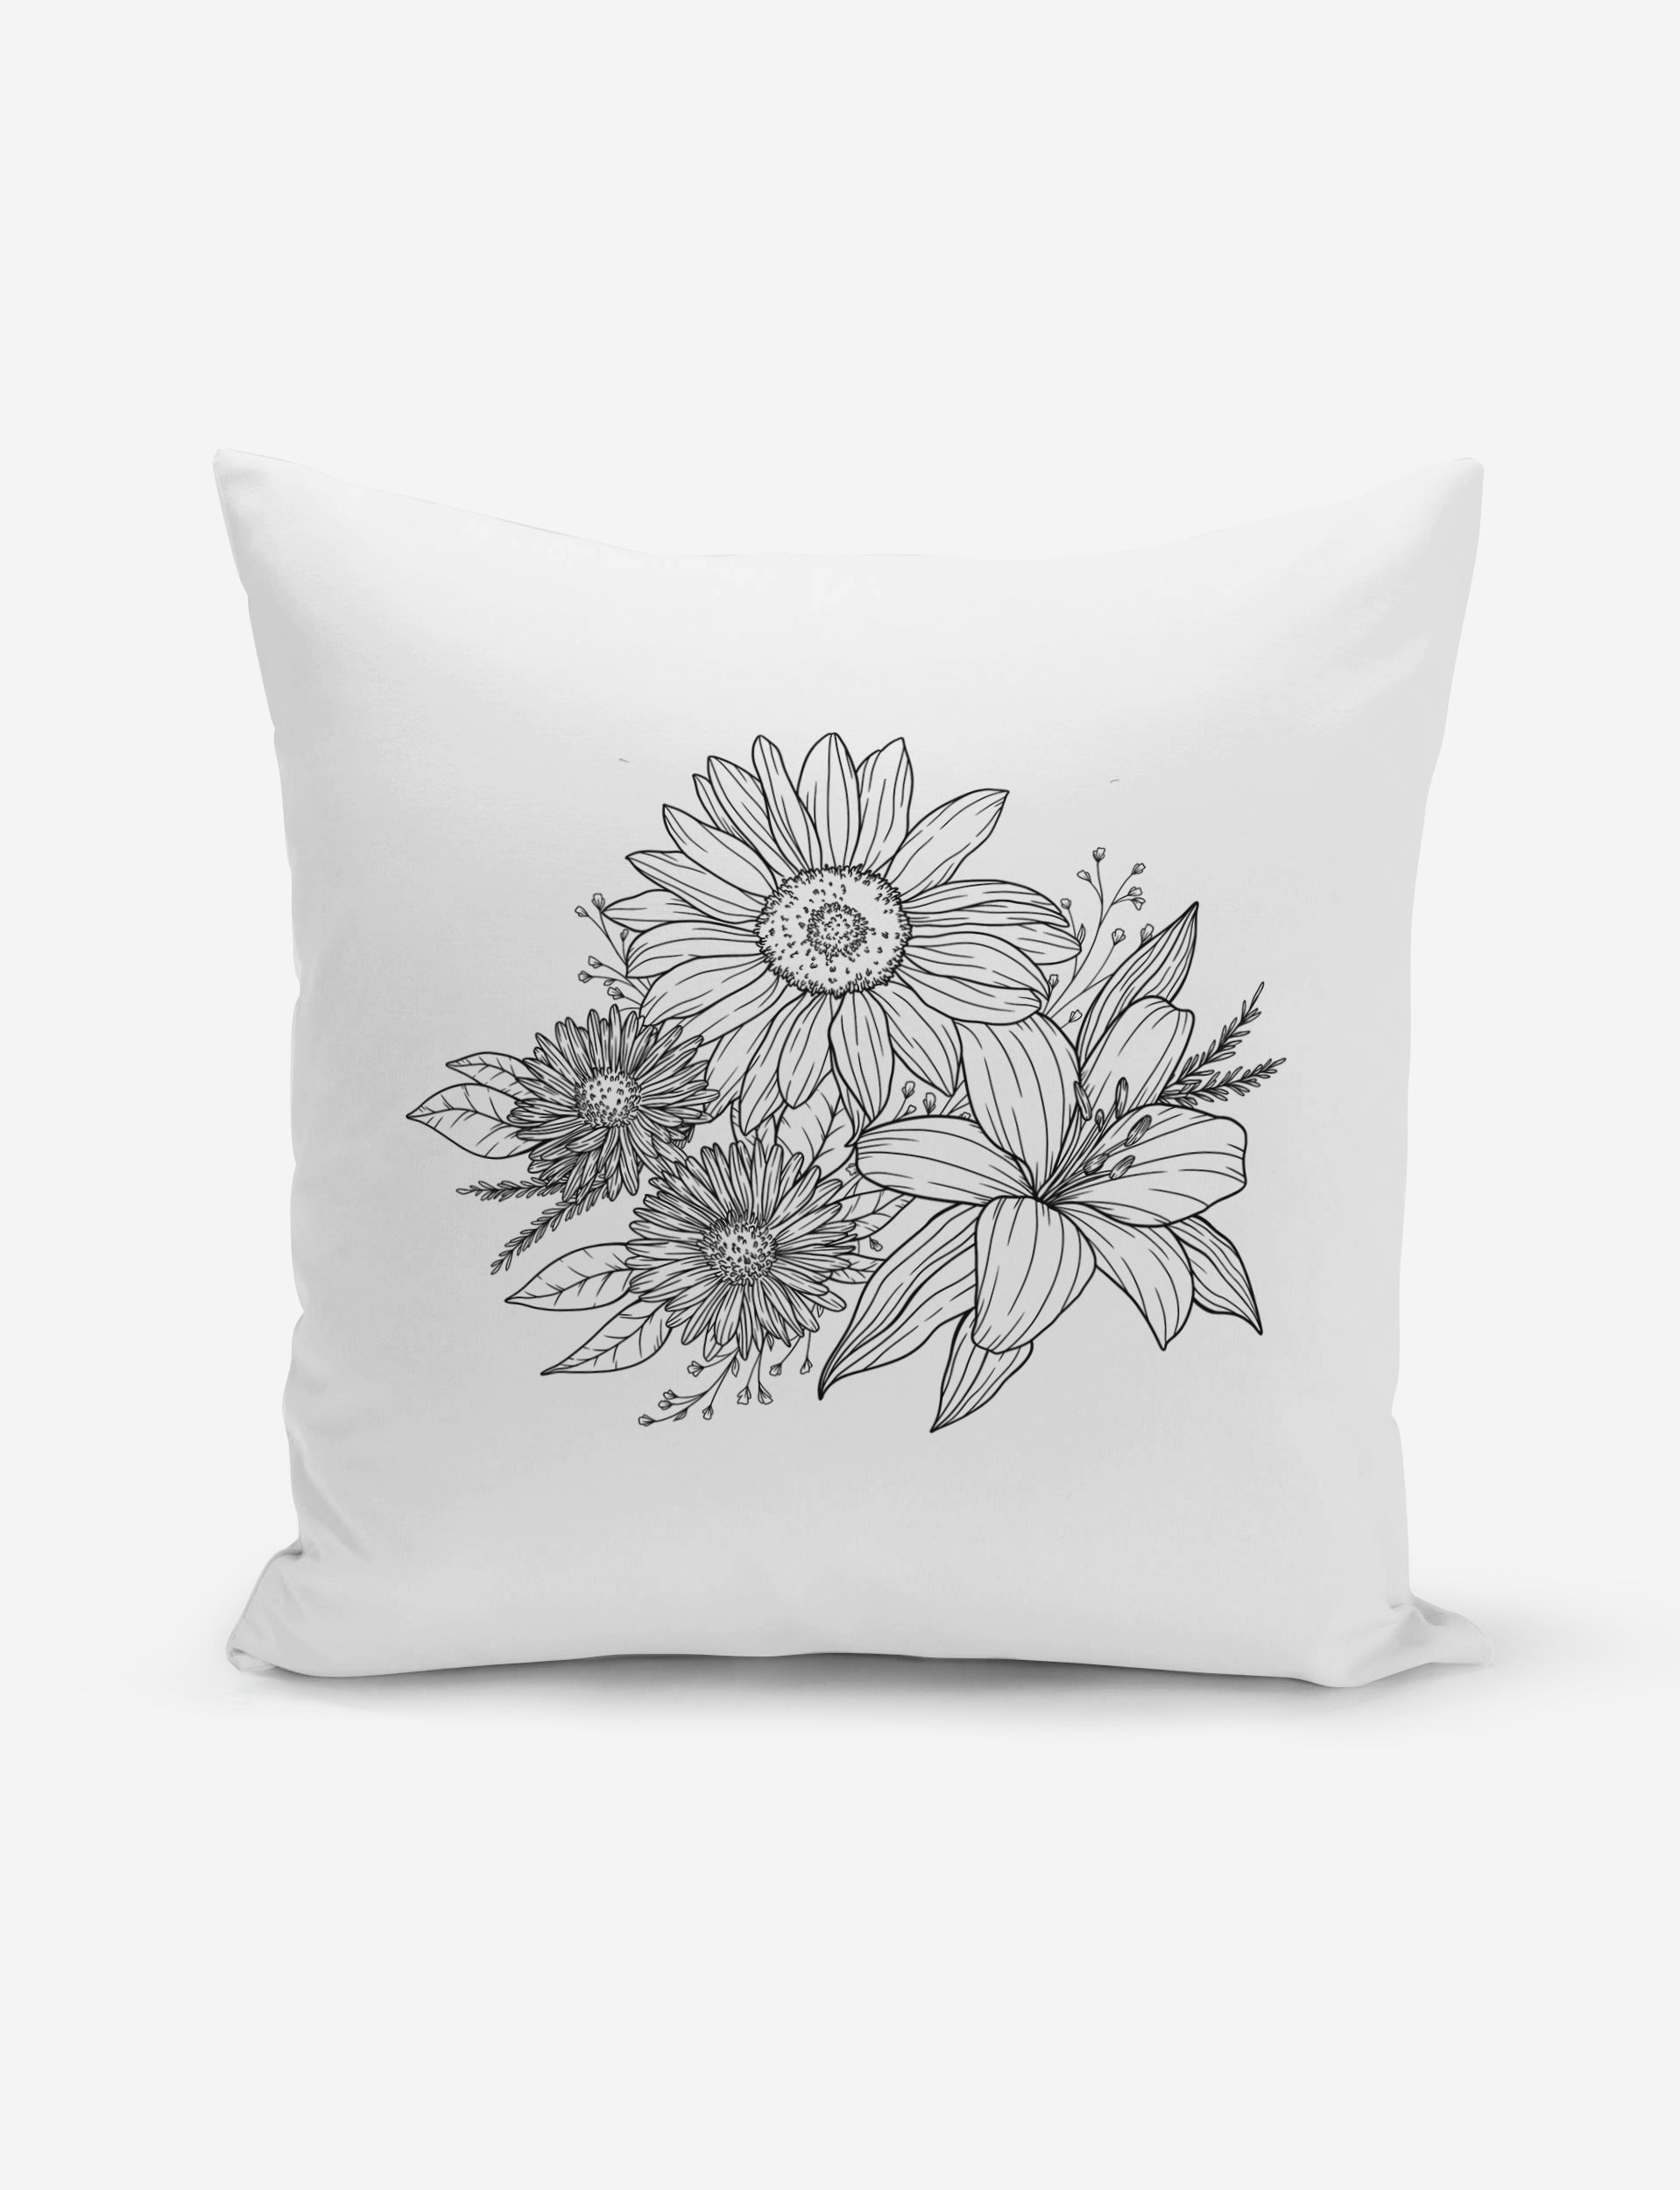 Sunflower and Lily Pillow